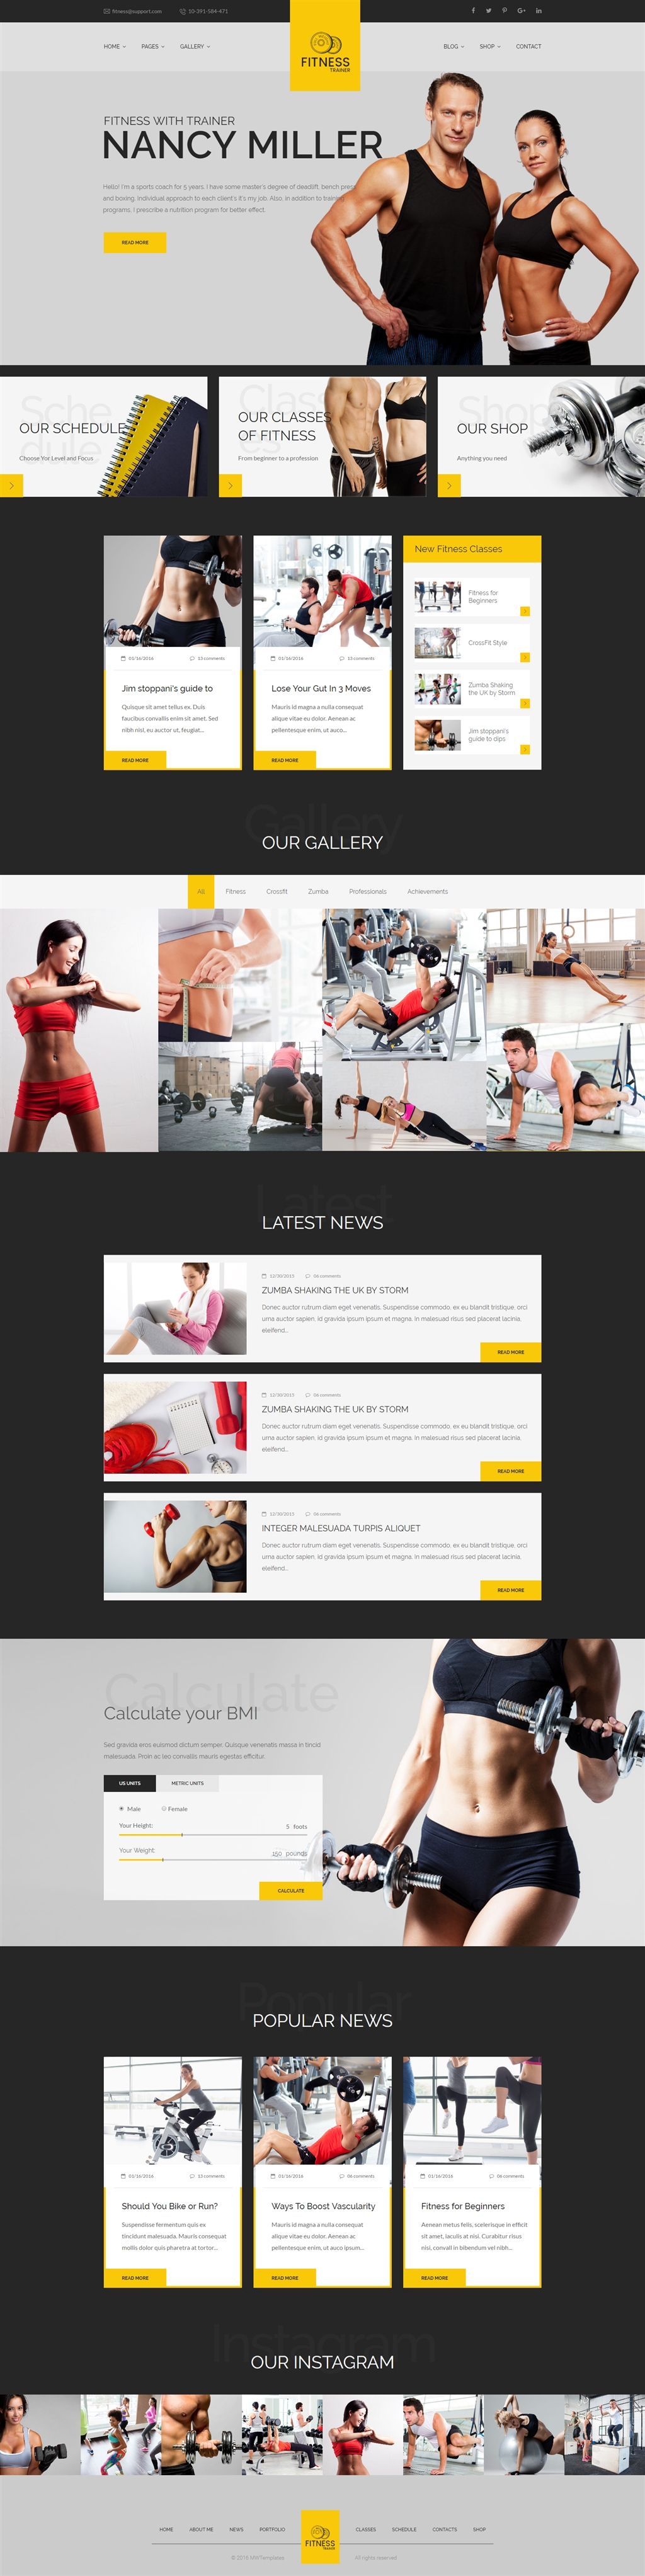 Sport Trainer - Boxing, Yoga and Crossfit Trainer HTML template ...